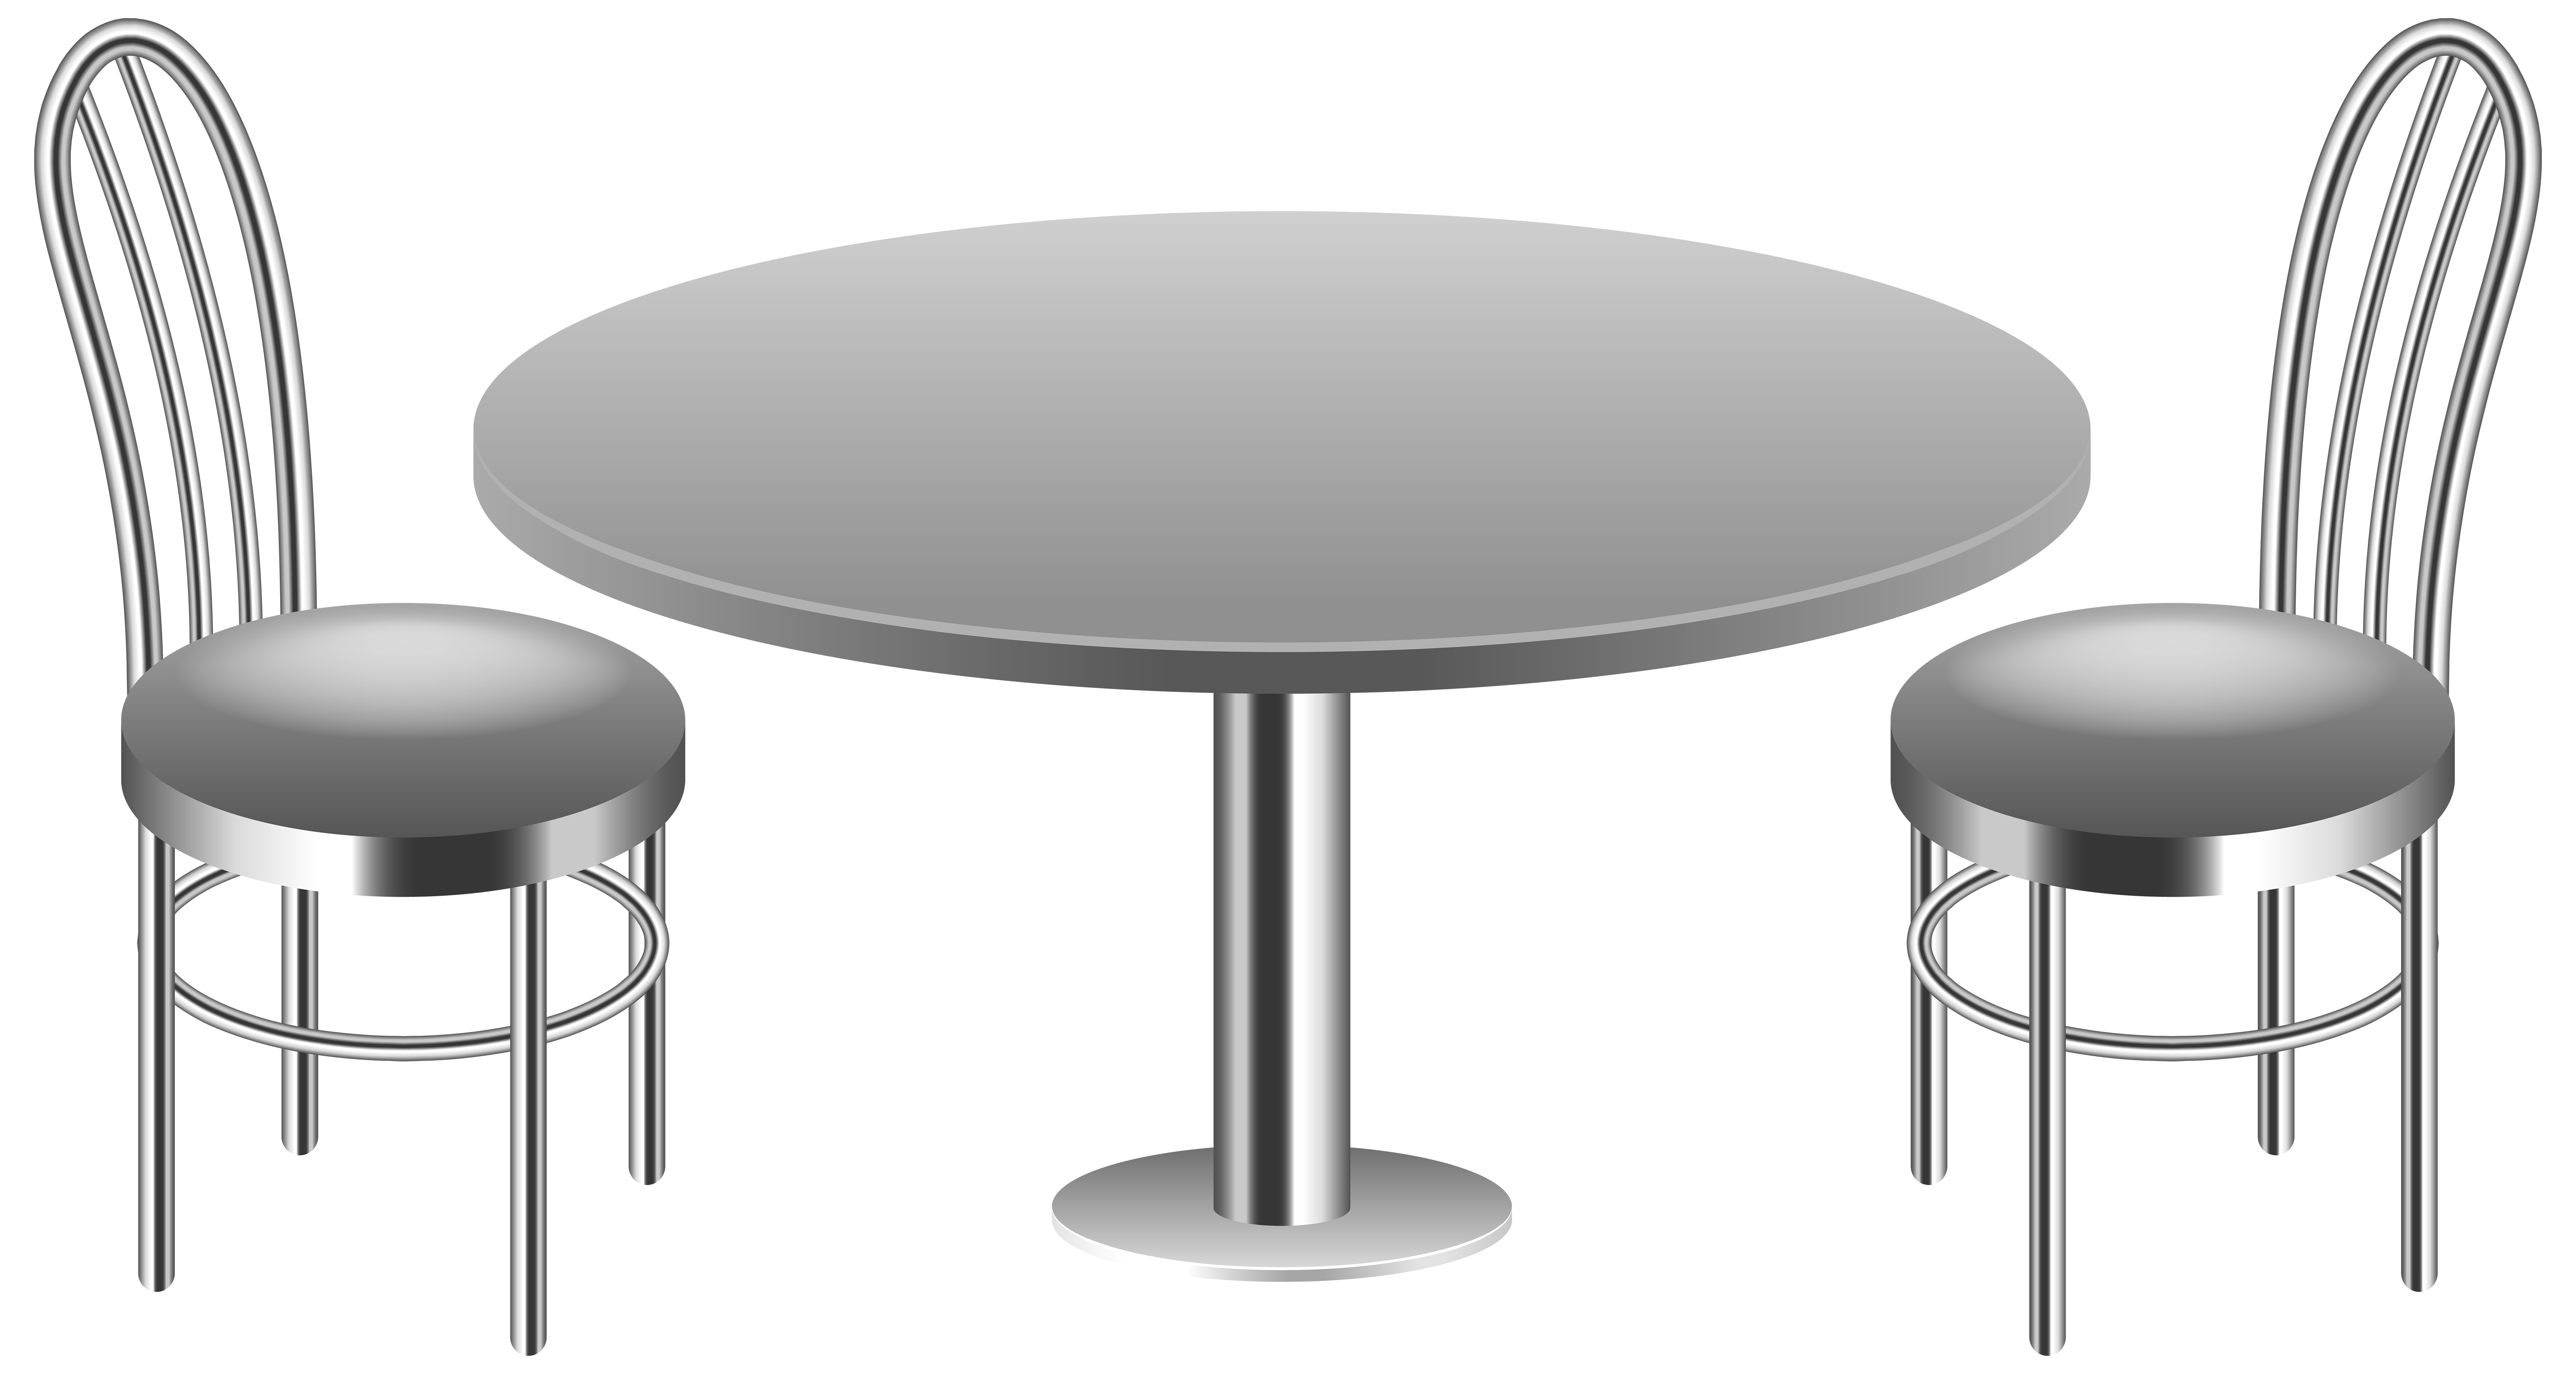 Table with Chairs Transparent PNG Clip Art Image.